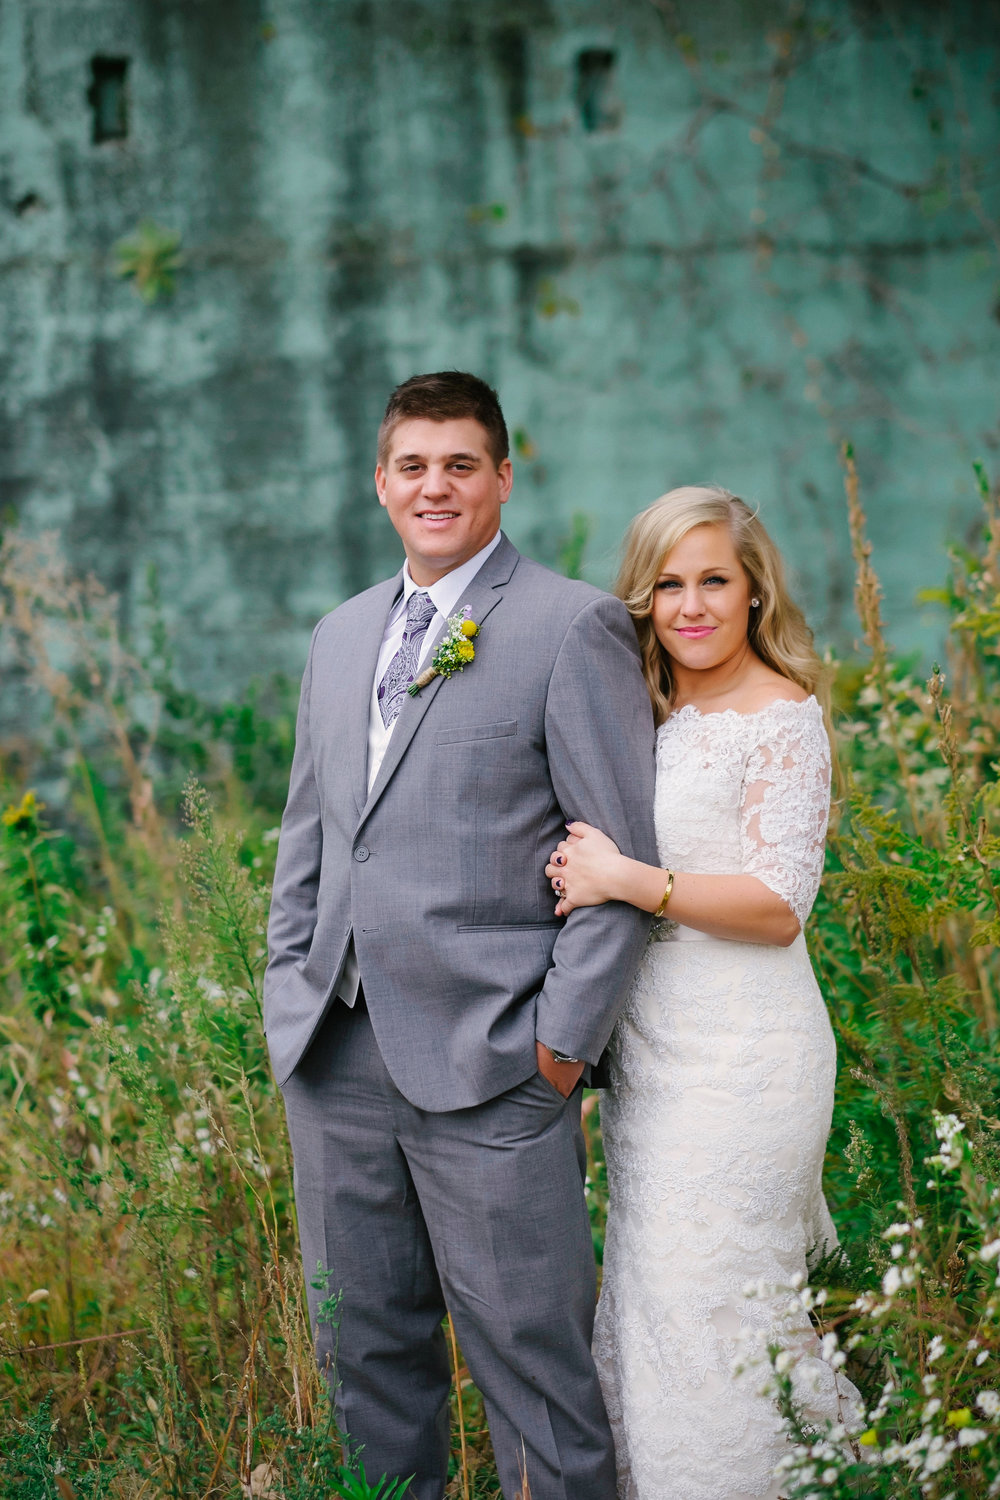 McConville Studio Starved Rock and Chicagoland Wedding Photographer 103.jpg